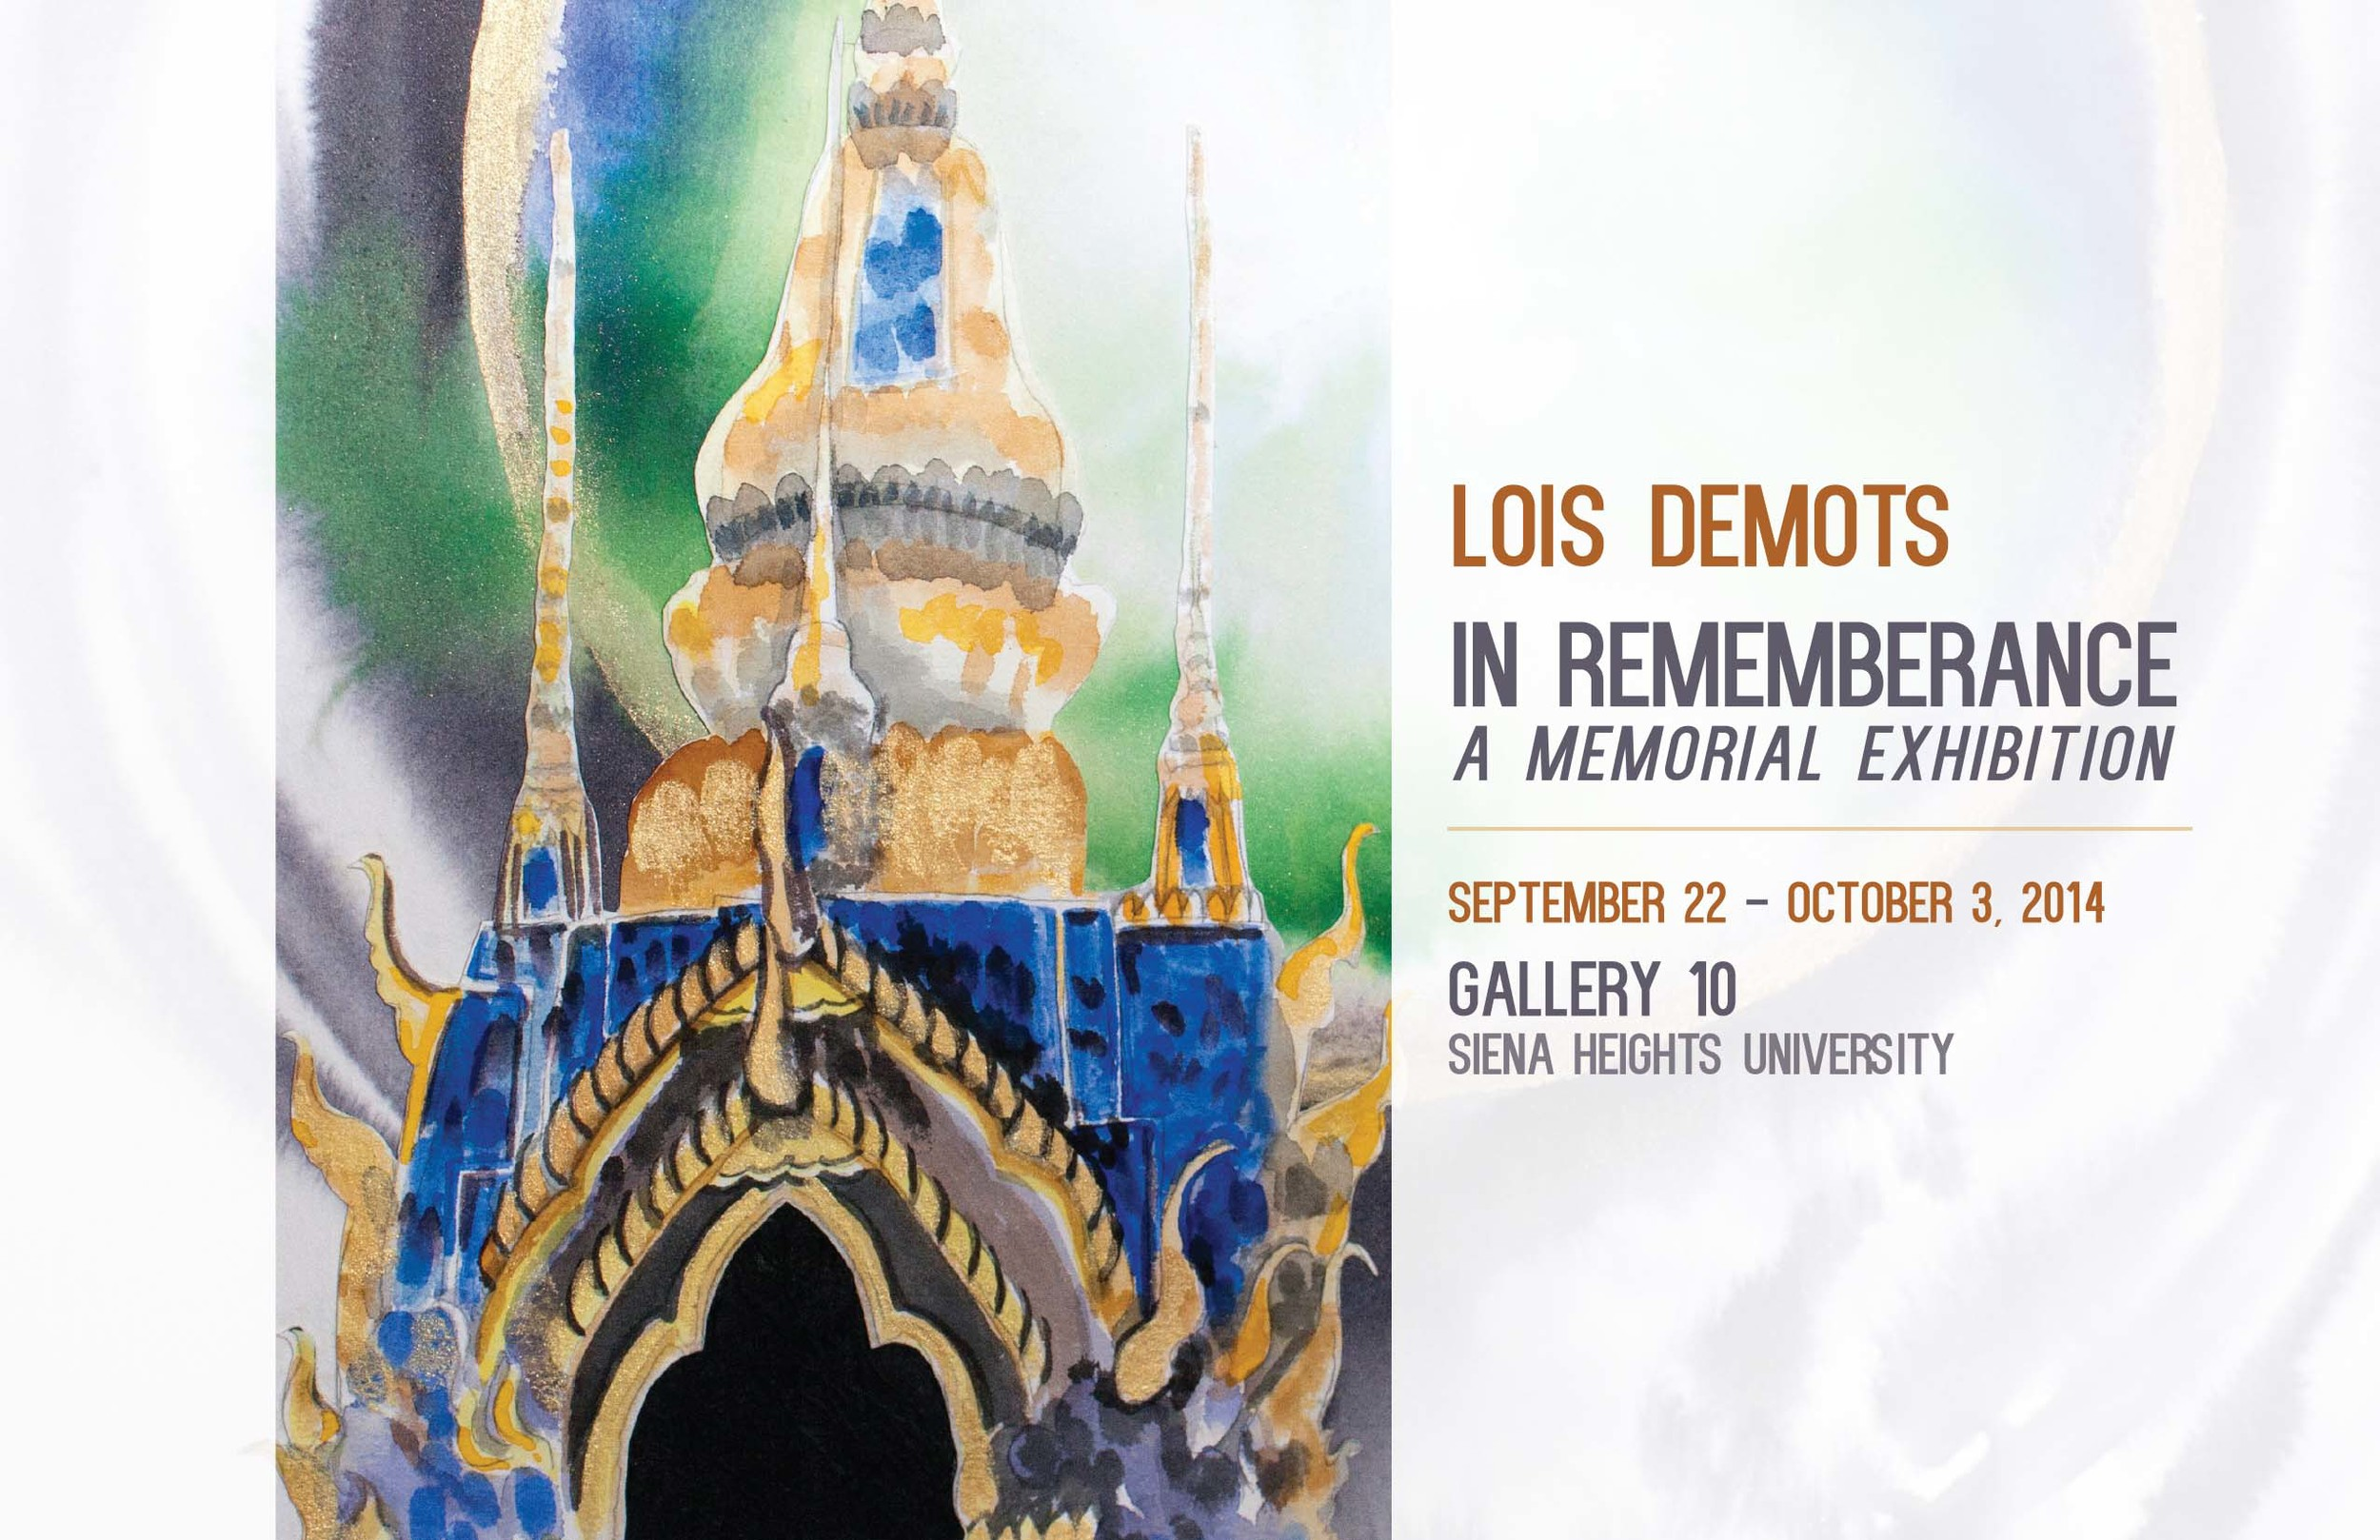 Lois DeMots, In Remembrance, A Memorial Exhibition, September 22 to October 3, 2014, in Gallery Ten, Studio Angelico, Siena Heights University, curated by SHU Art History major Kate Dombrowski.